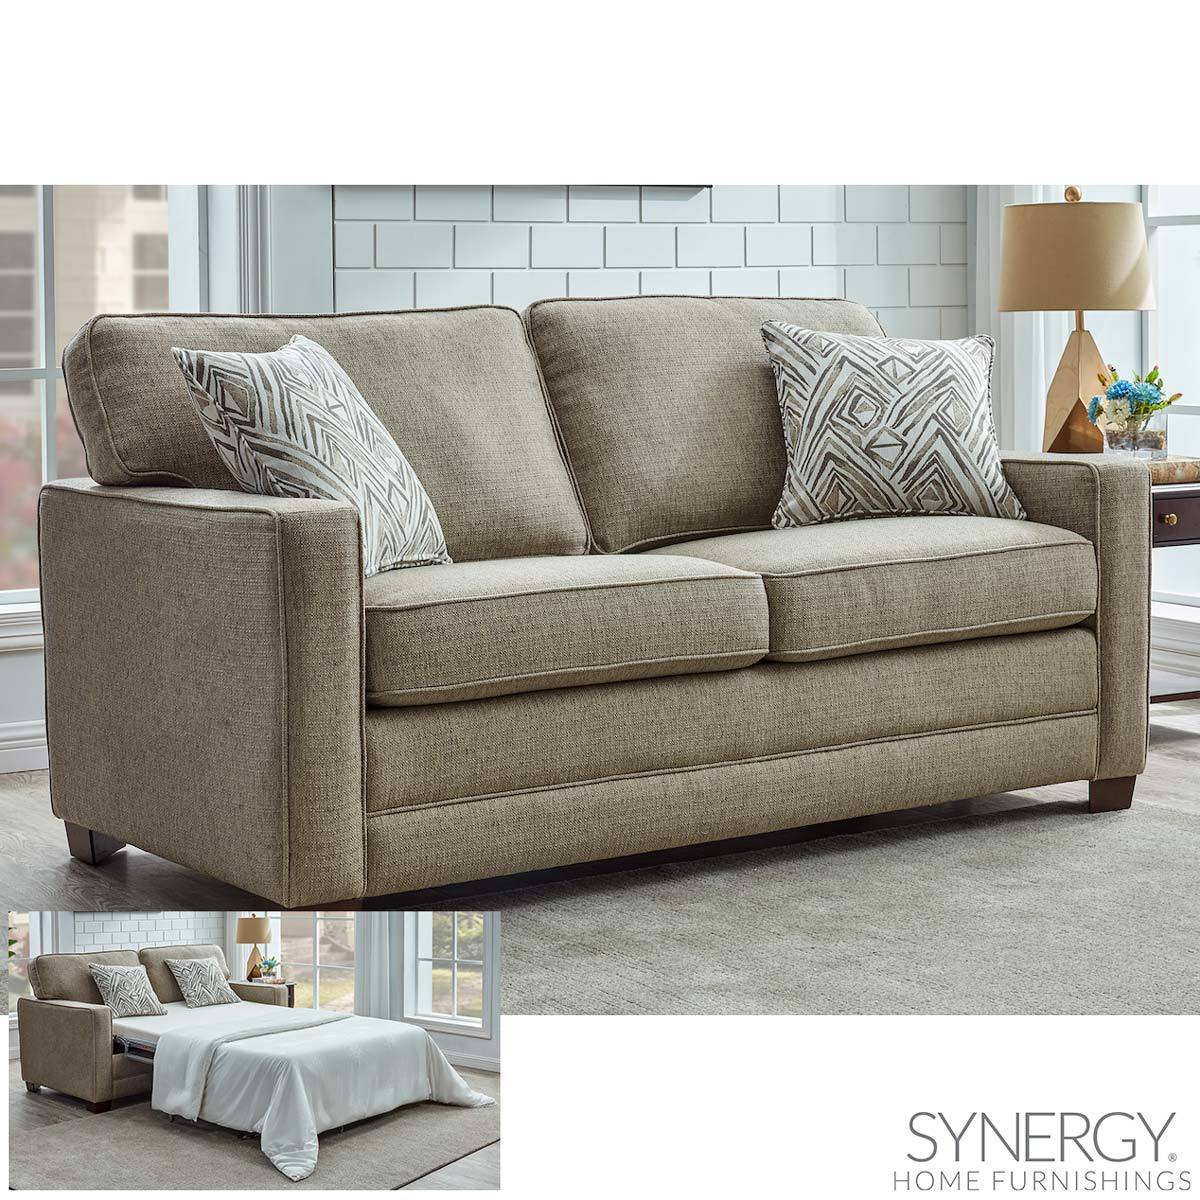 - Landree Fabric Full Size Sleeper Sofa Bed With 2 Accent Pillows